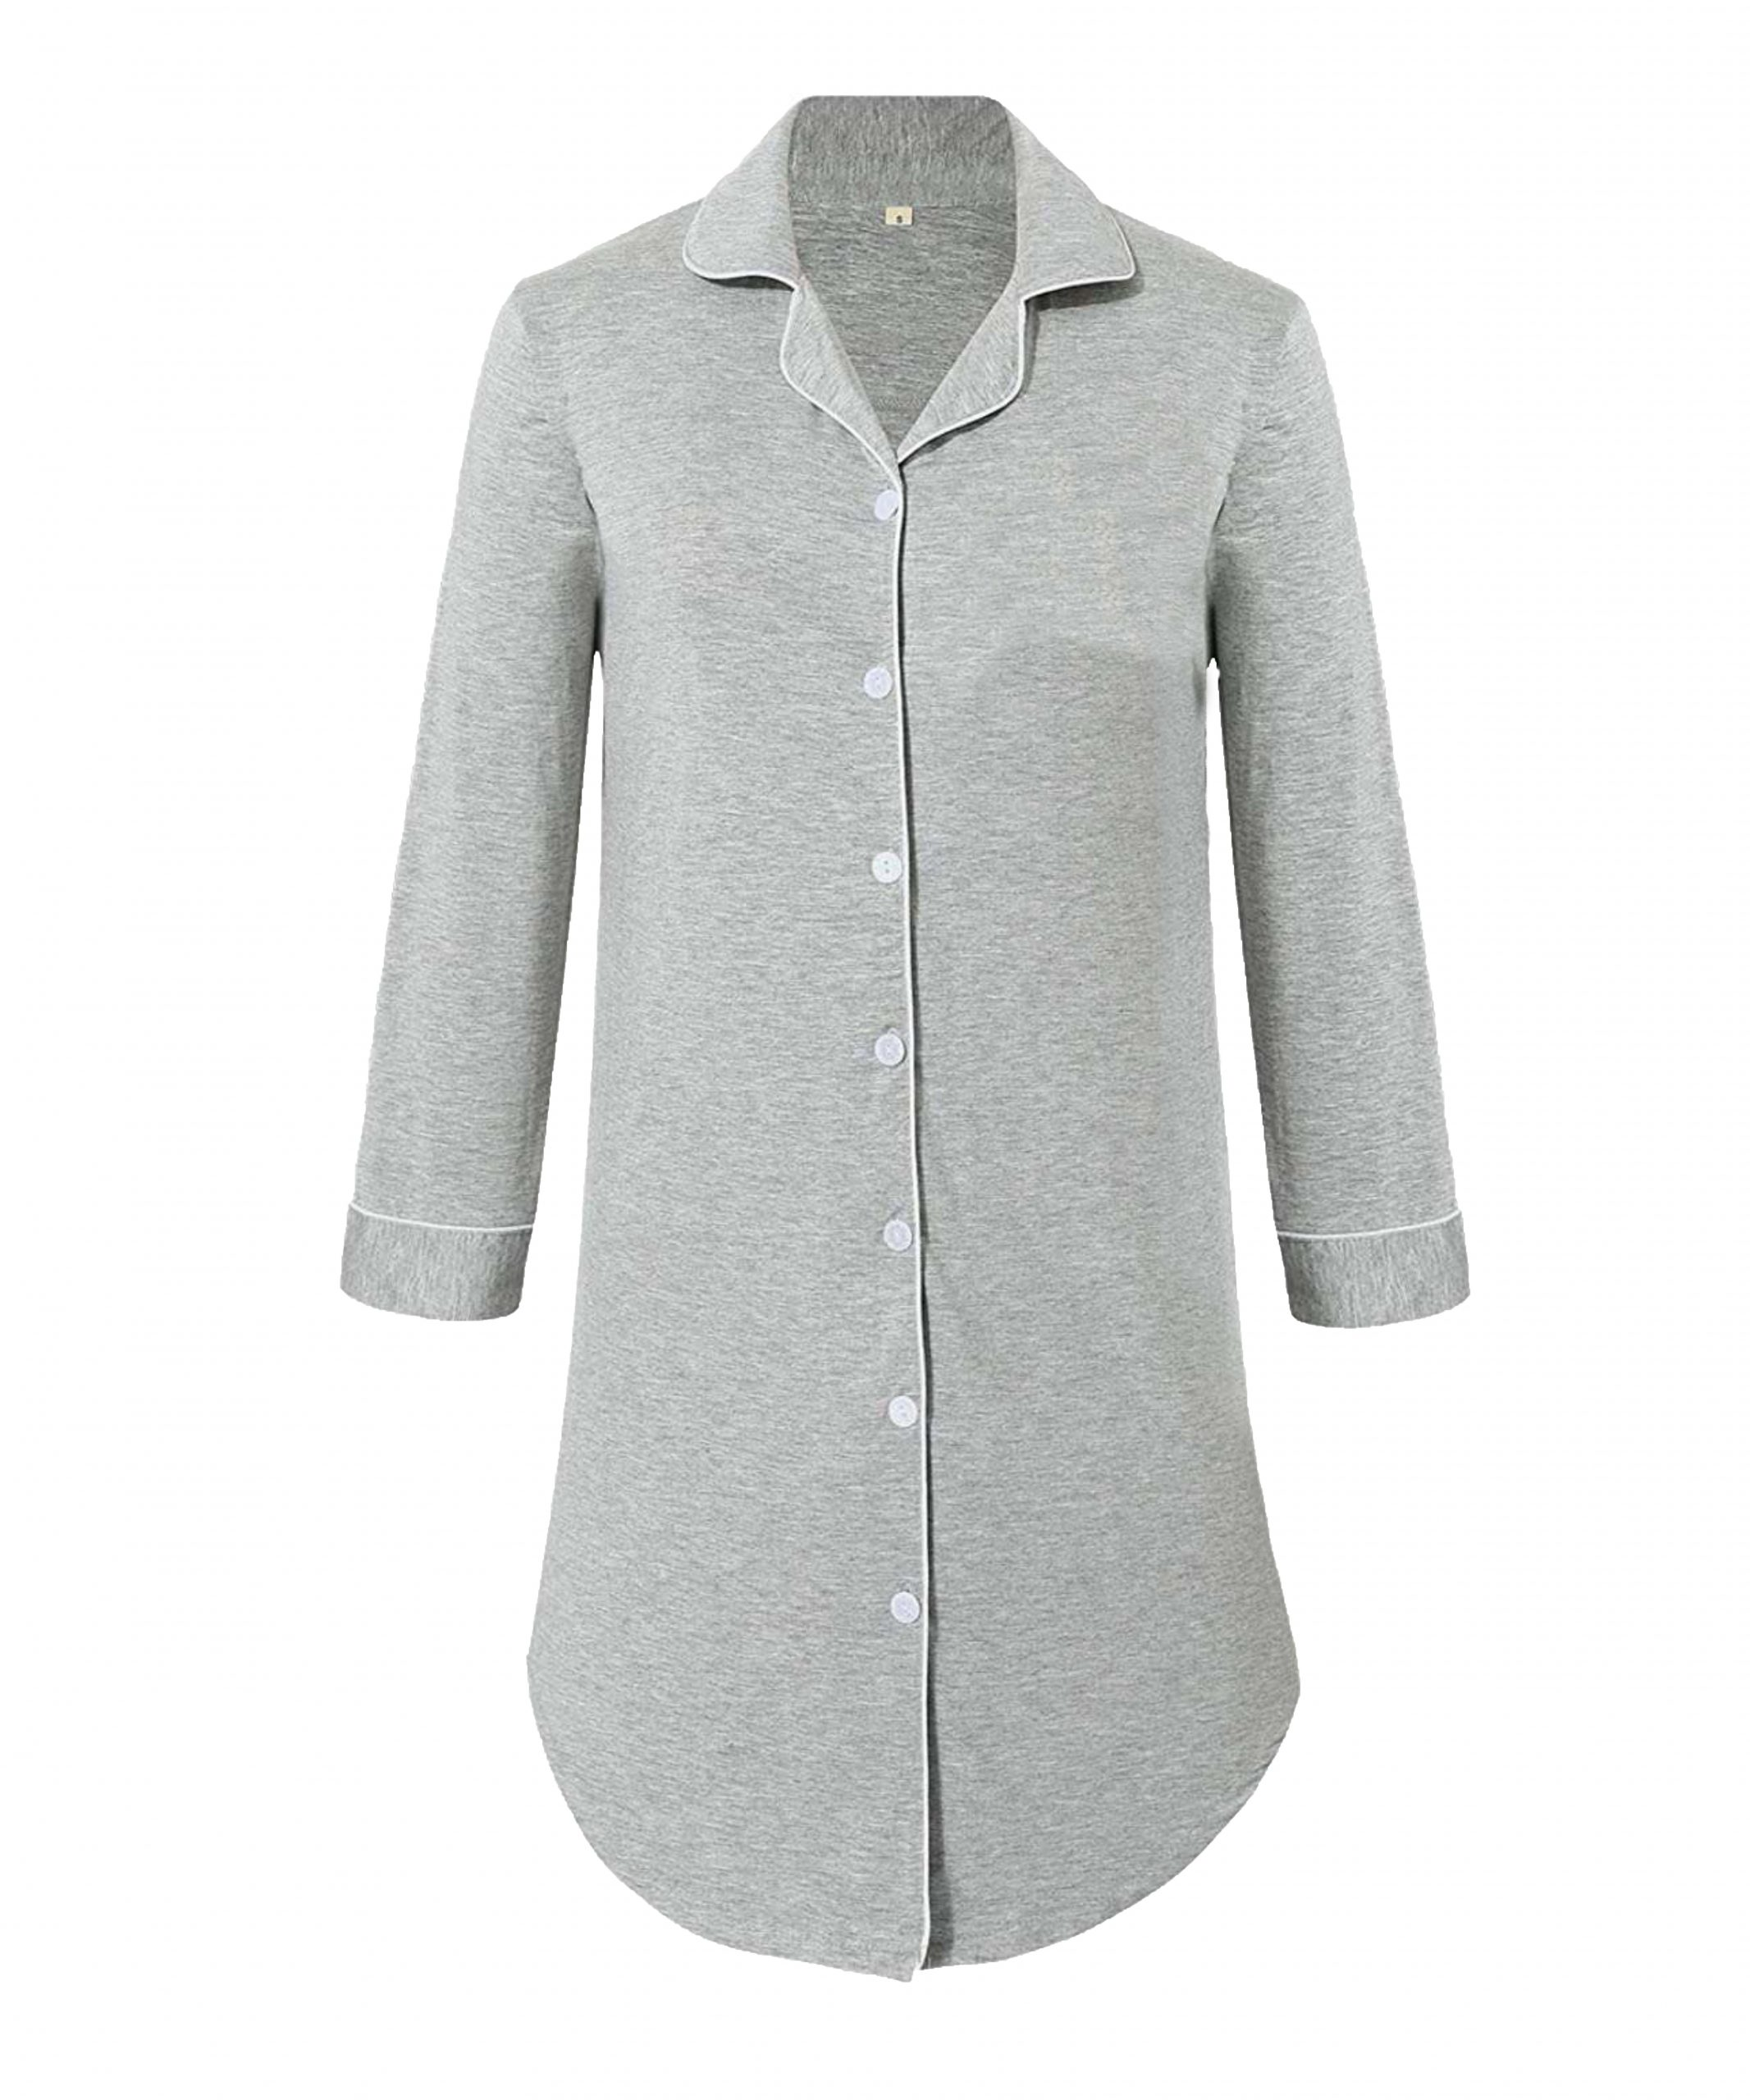 Hannah Grace Grey - Button Down Sleep Shirt 1